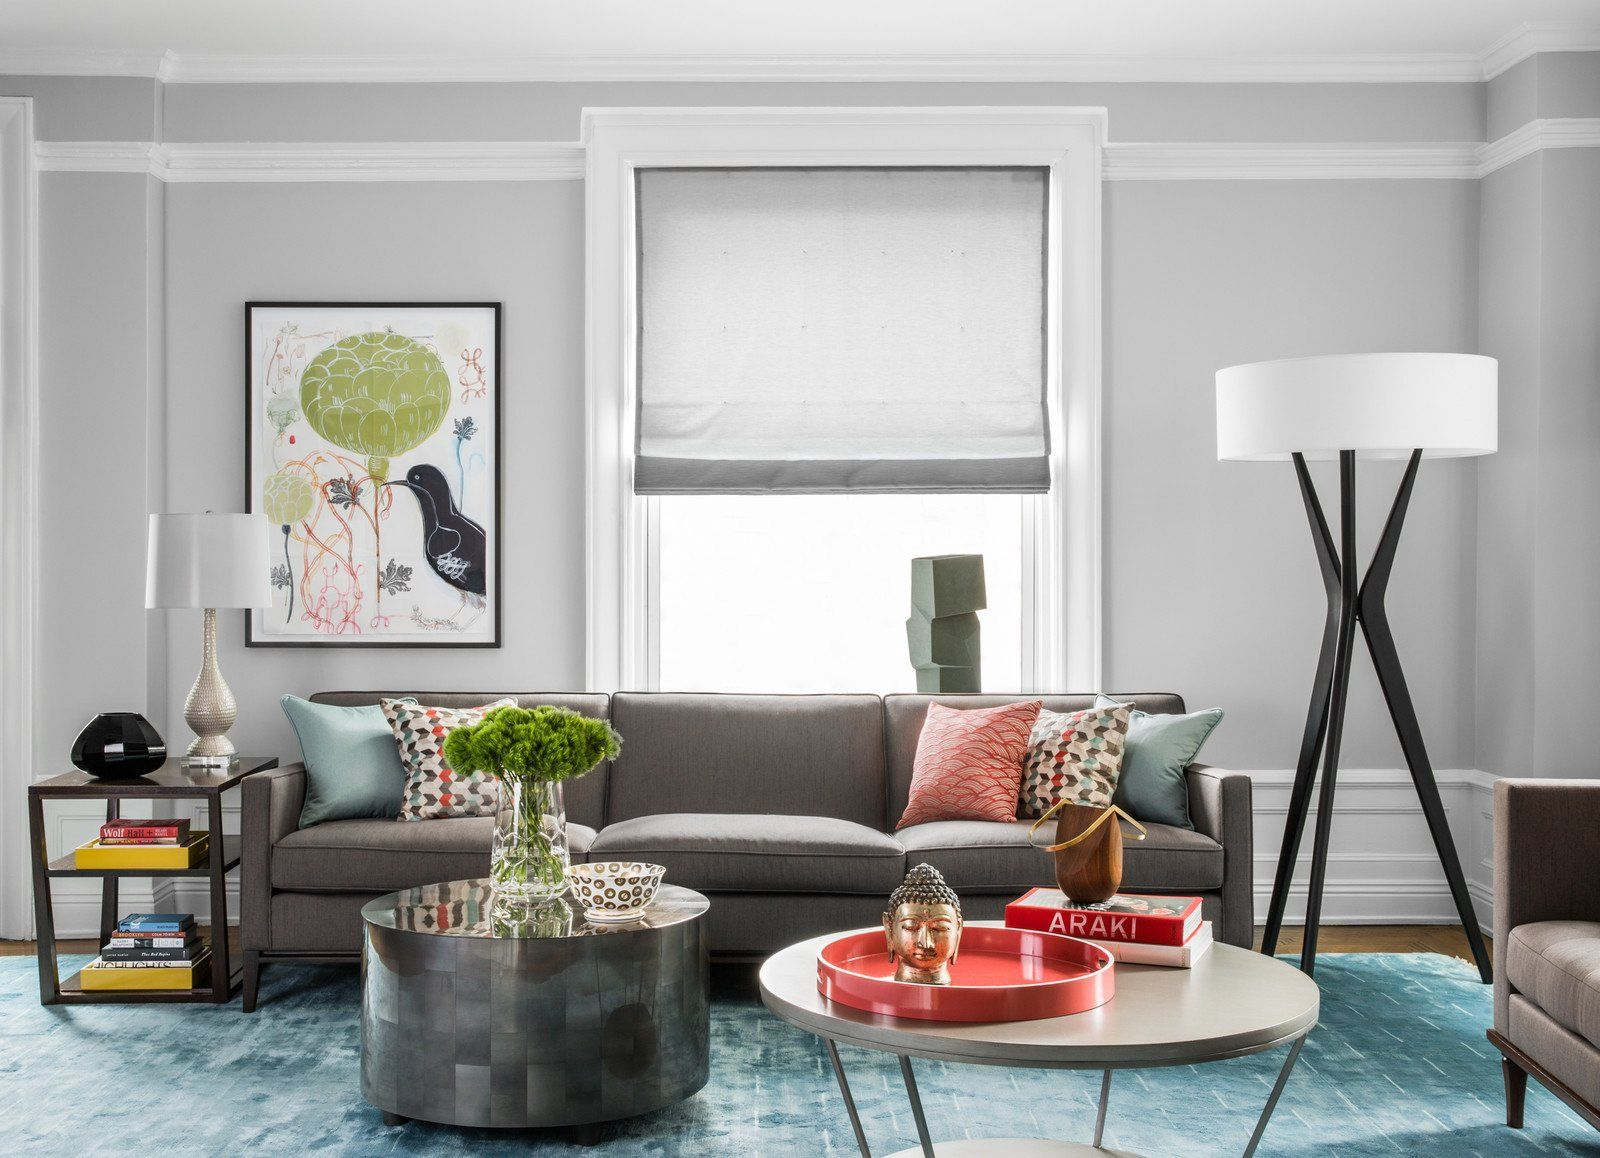 Living Room Decor For Gray Couches 15 Ways To Style A Grey Sofa In Your Home In 2020 Living Room Decor Grey Sofa Living Room Grey Living Room Decor Gray